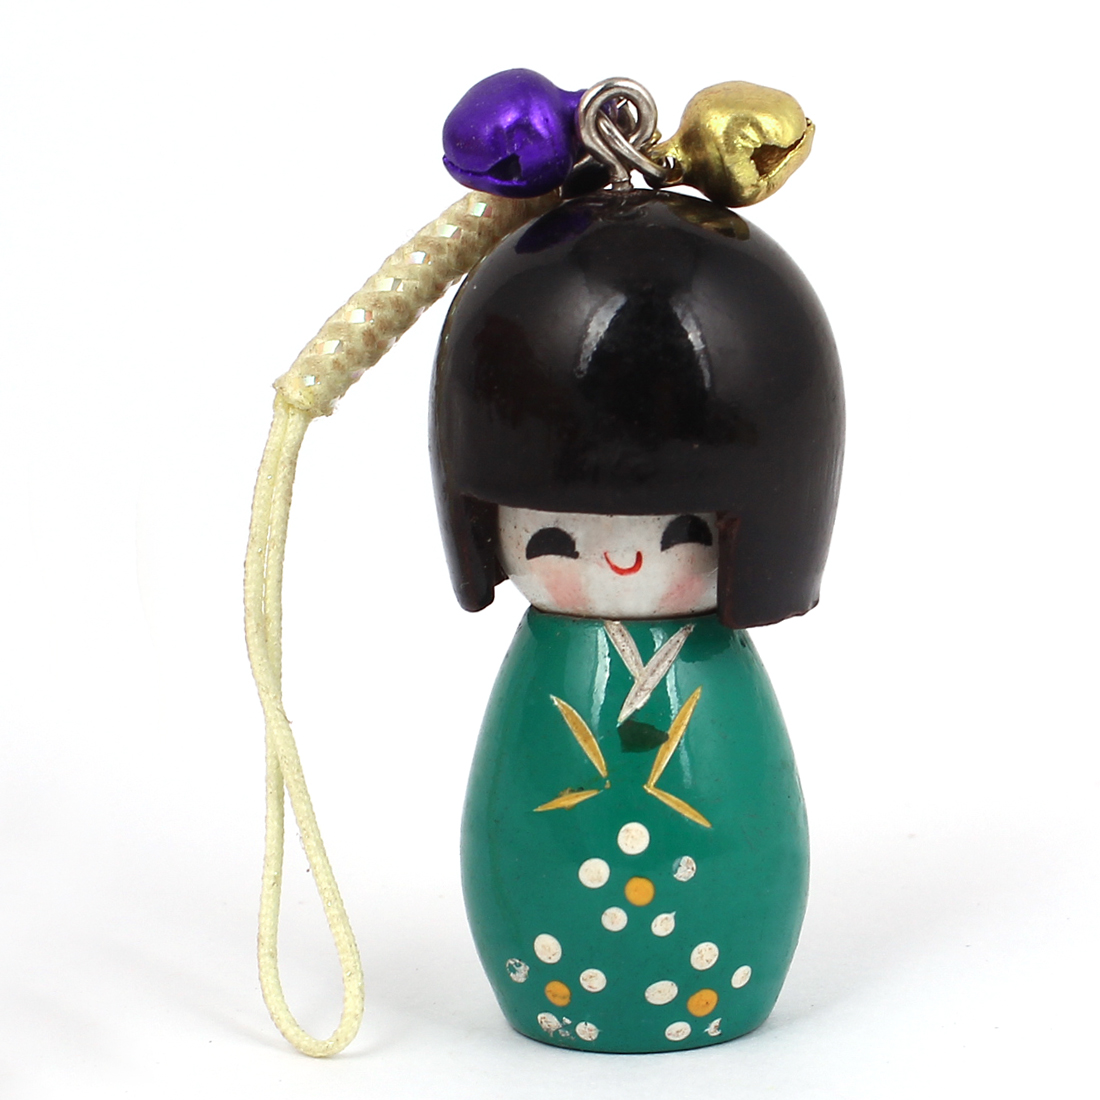 Lawn Green Wooden Japanese Kokeshi Doll Bells Ornament Cell Phone Strap w Yellow String